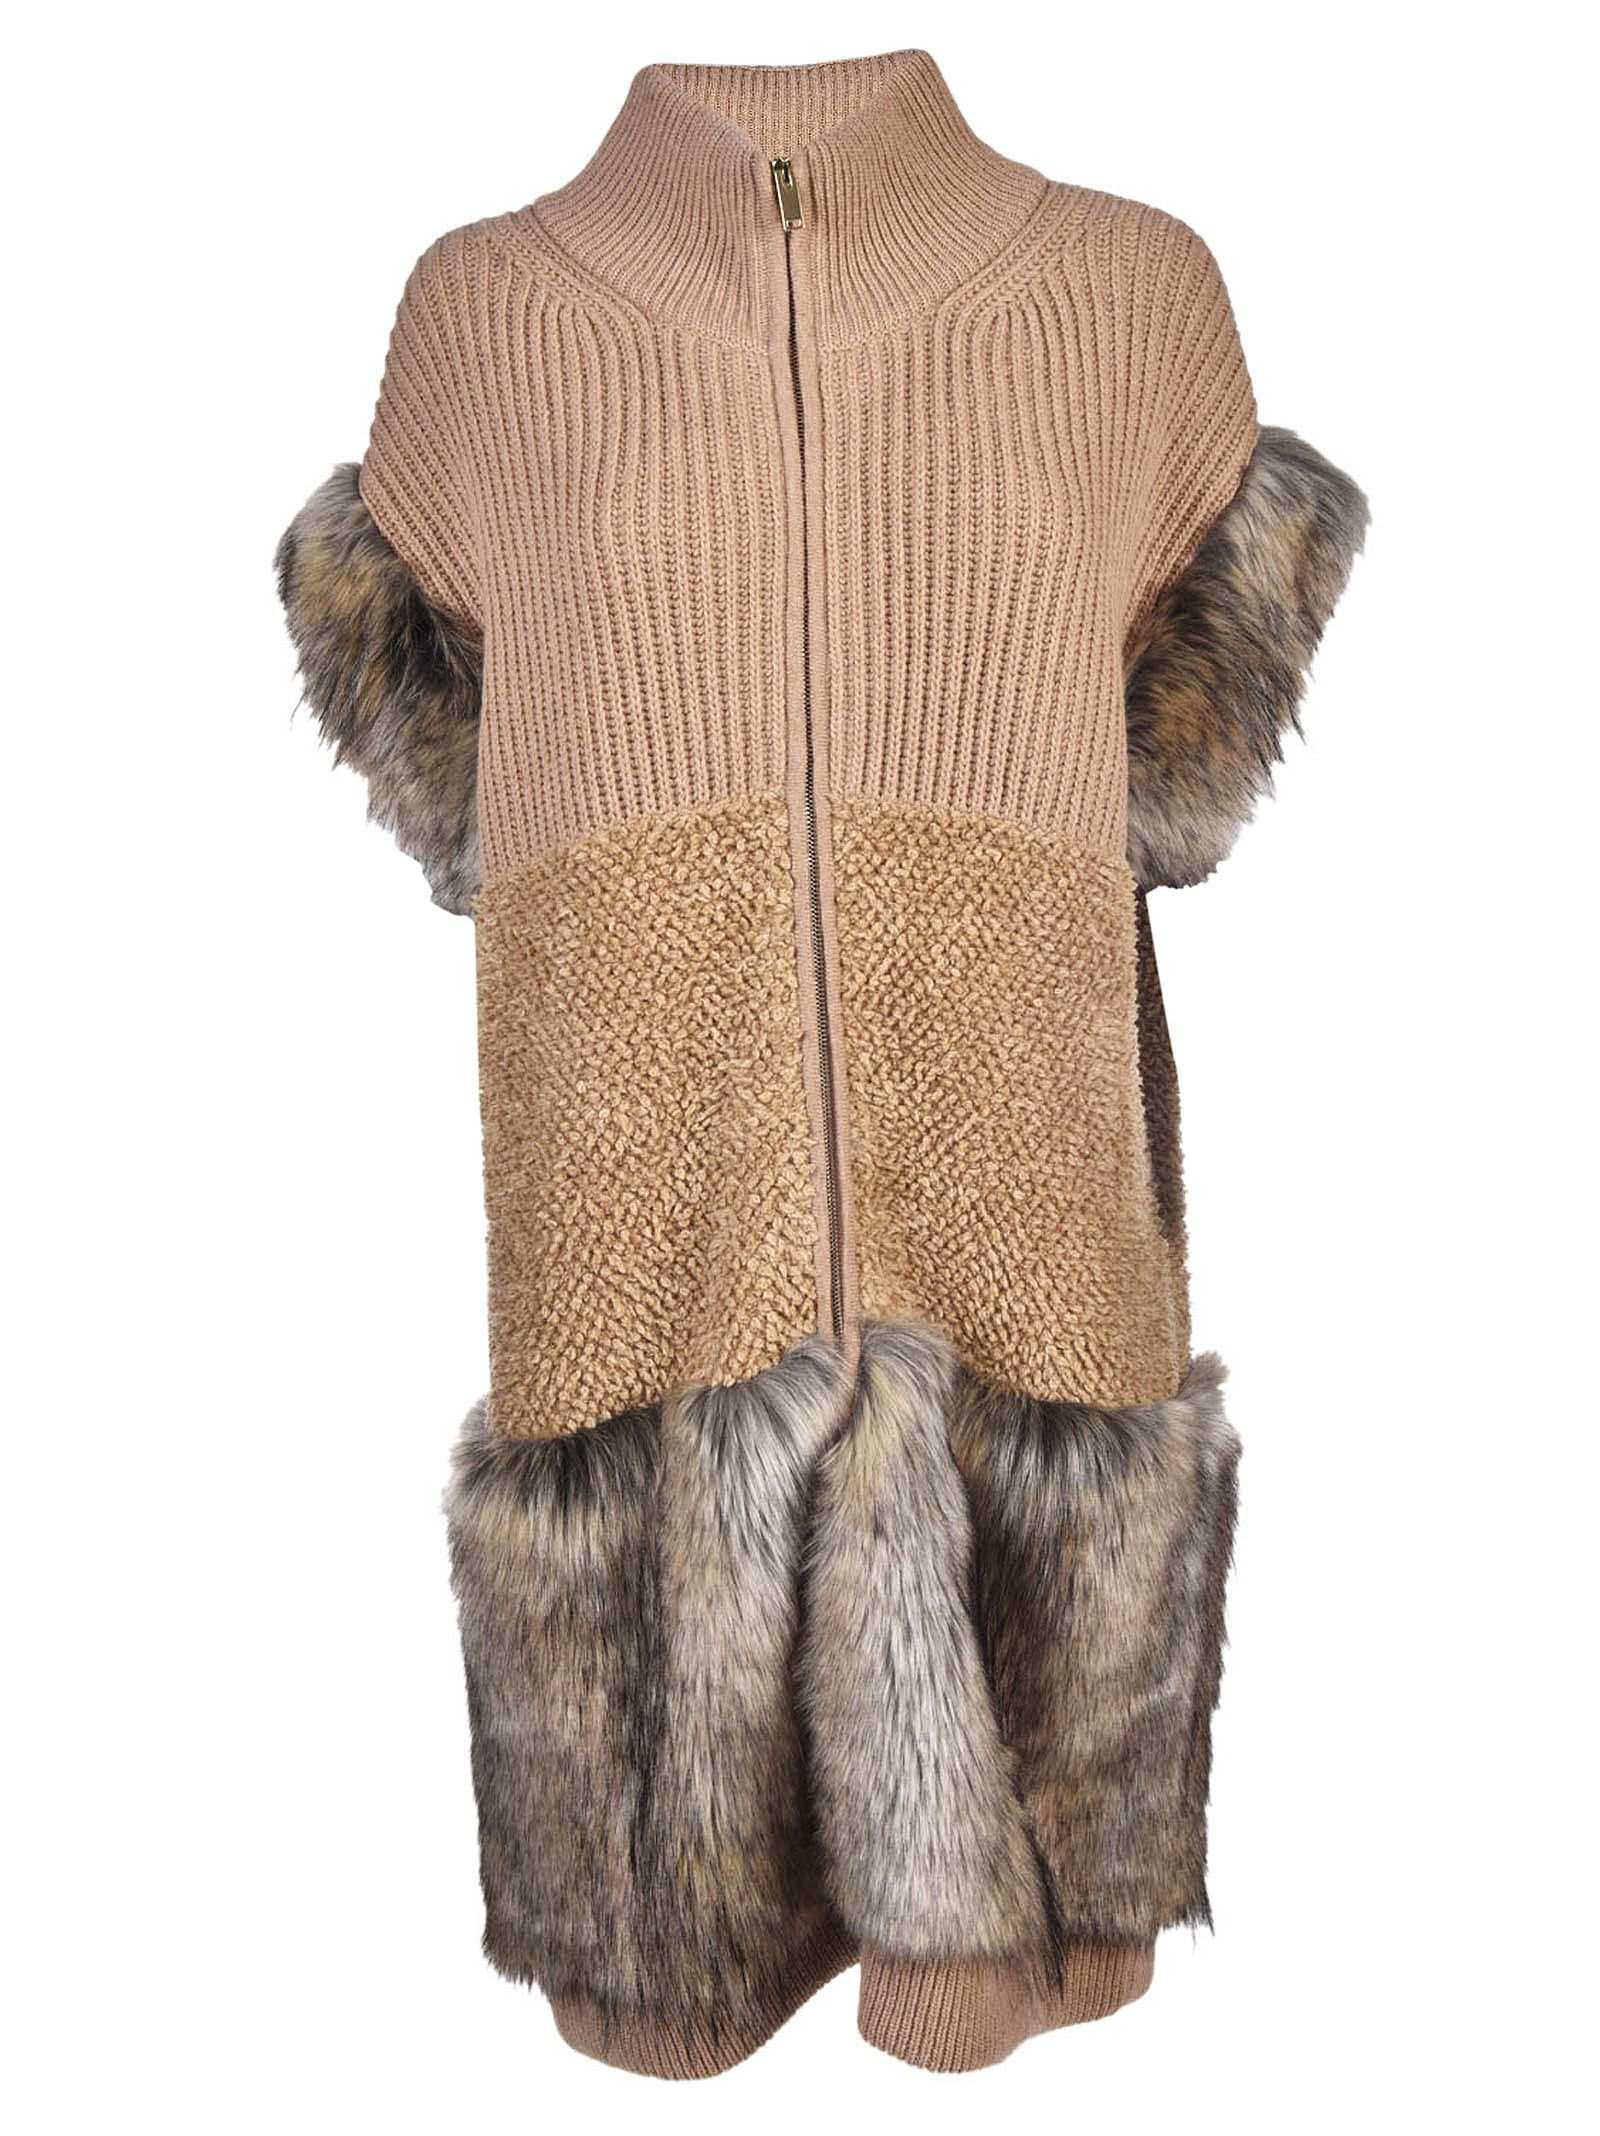 Stella McCartney Fur Free Fur Trimmed Coat